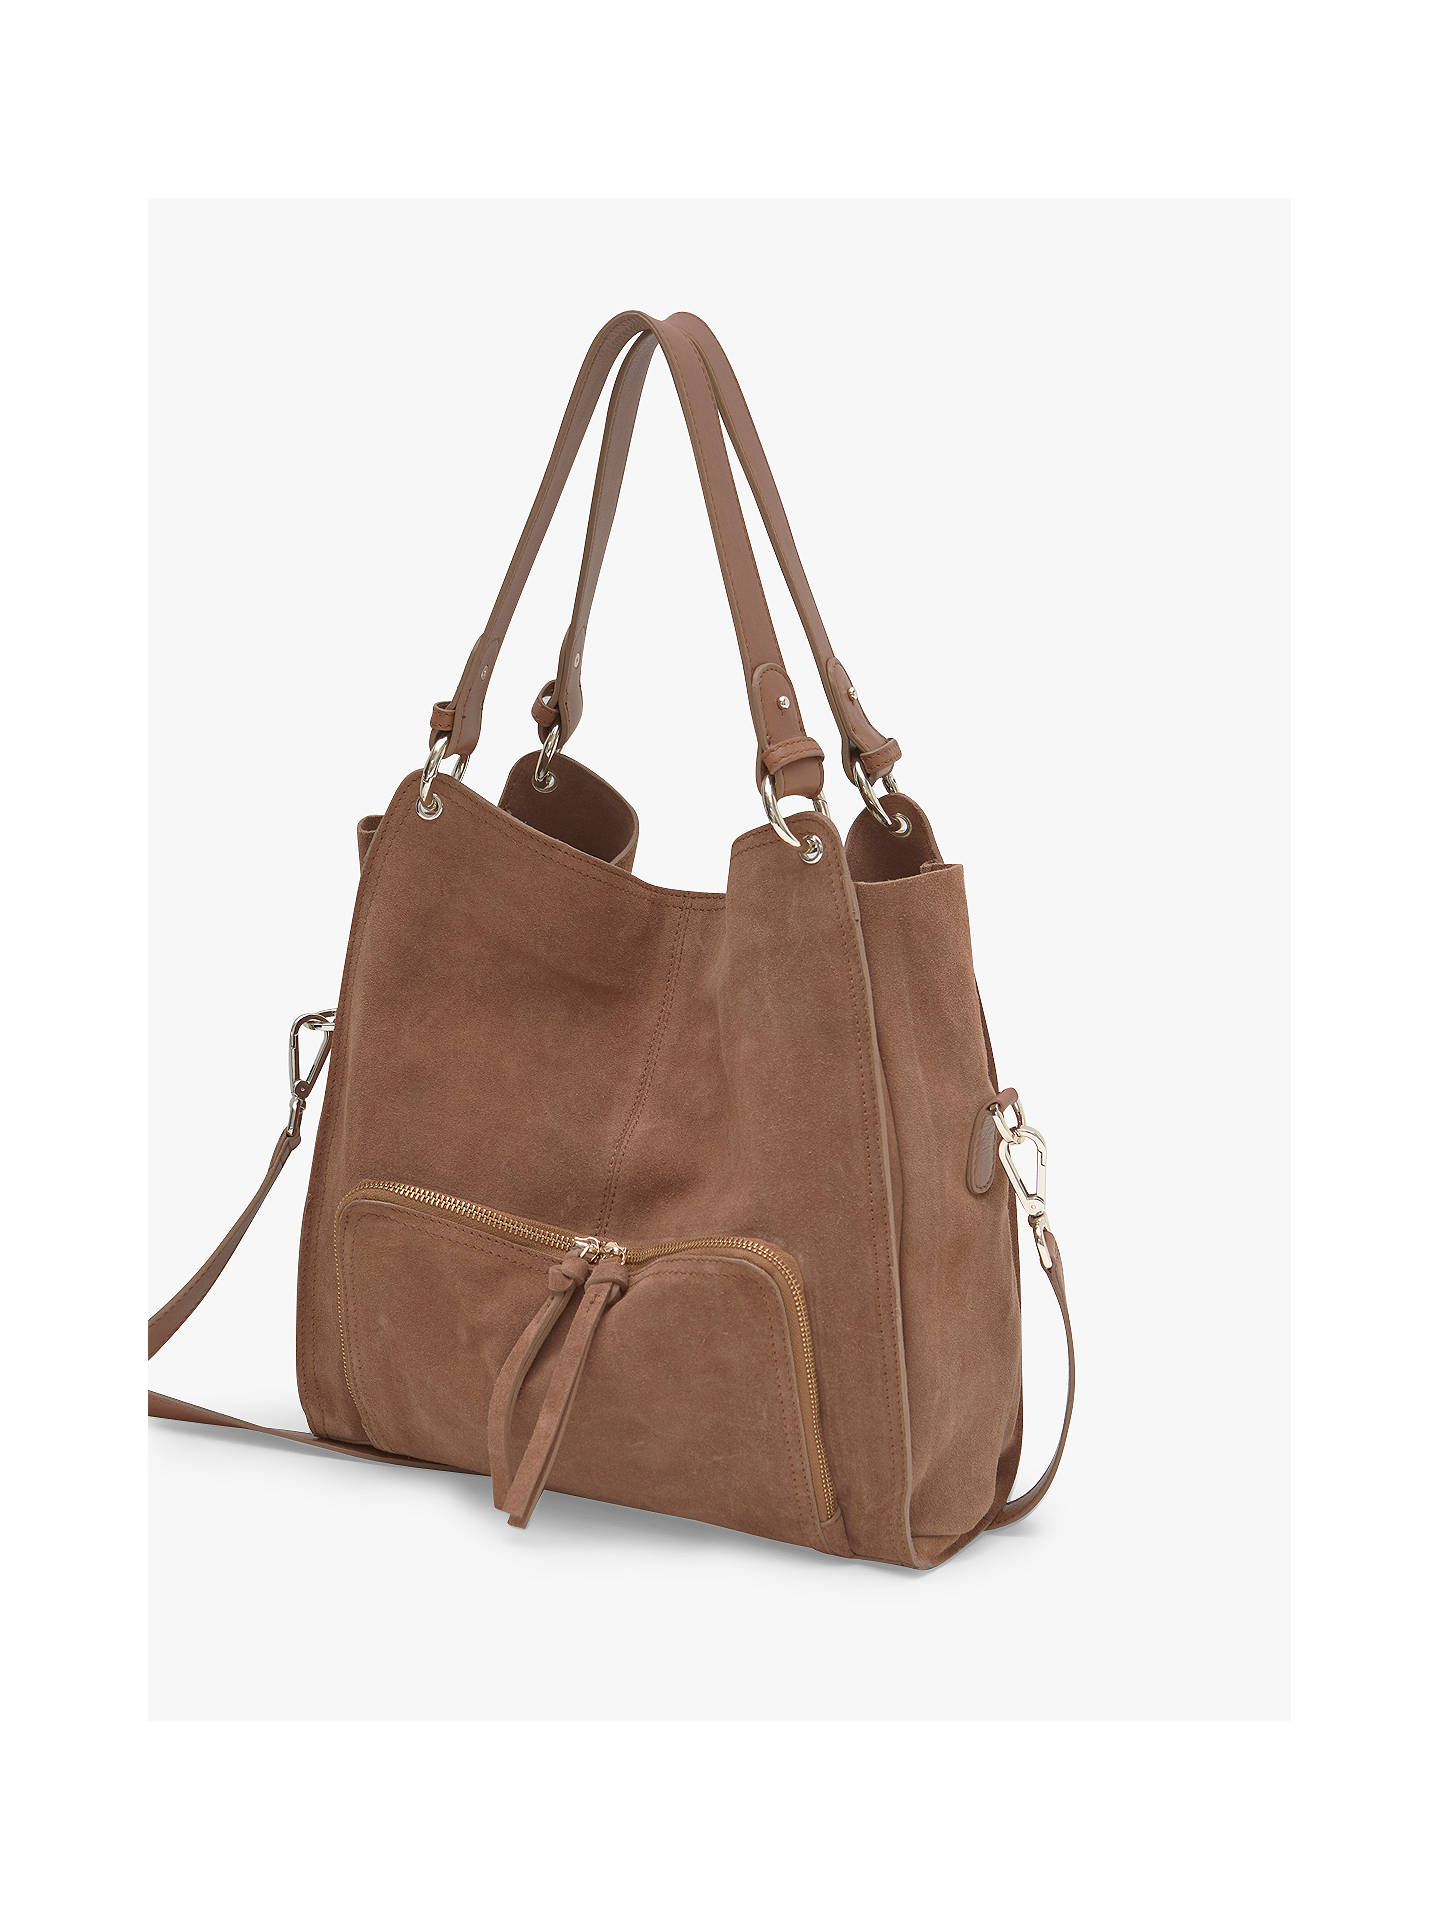 7a6a06f65ae305 ... Buy Mint Velvet Nelly Leather Slouch Tote Bag, Brown Online at  johnlewis.com